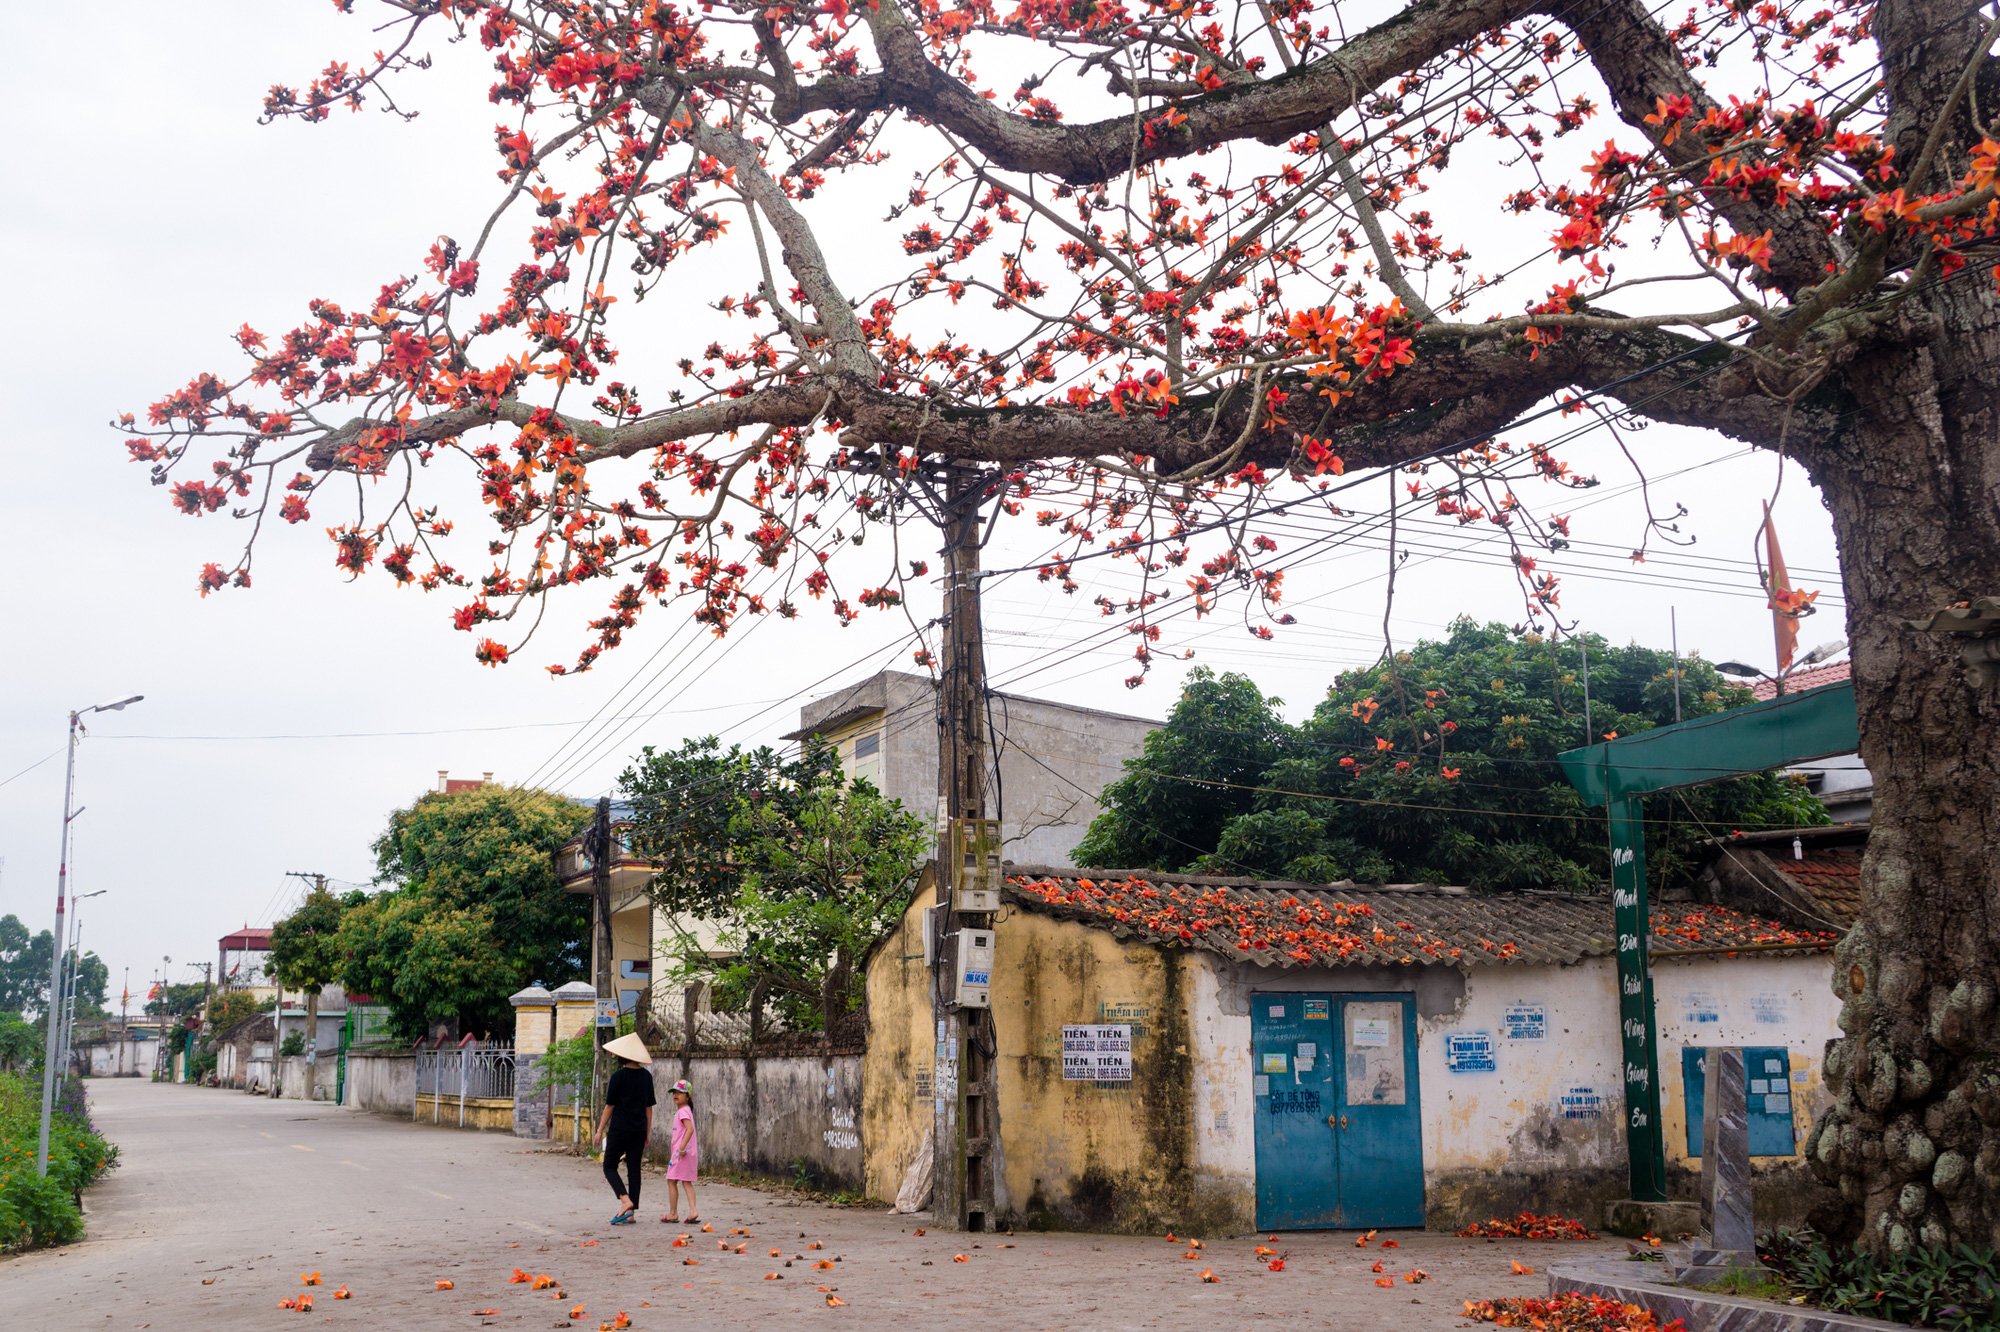 An ancient kapok tree blooms by the entrance to Dong Ky Village in Quynh Phu District, northern province of Thai Binh. Photo: Van Duy / Tuoi Tre